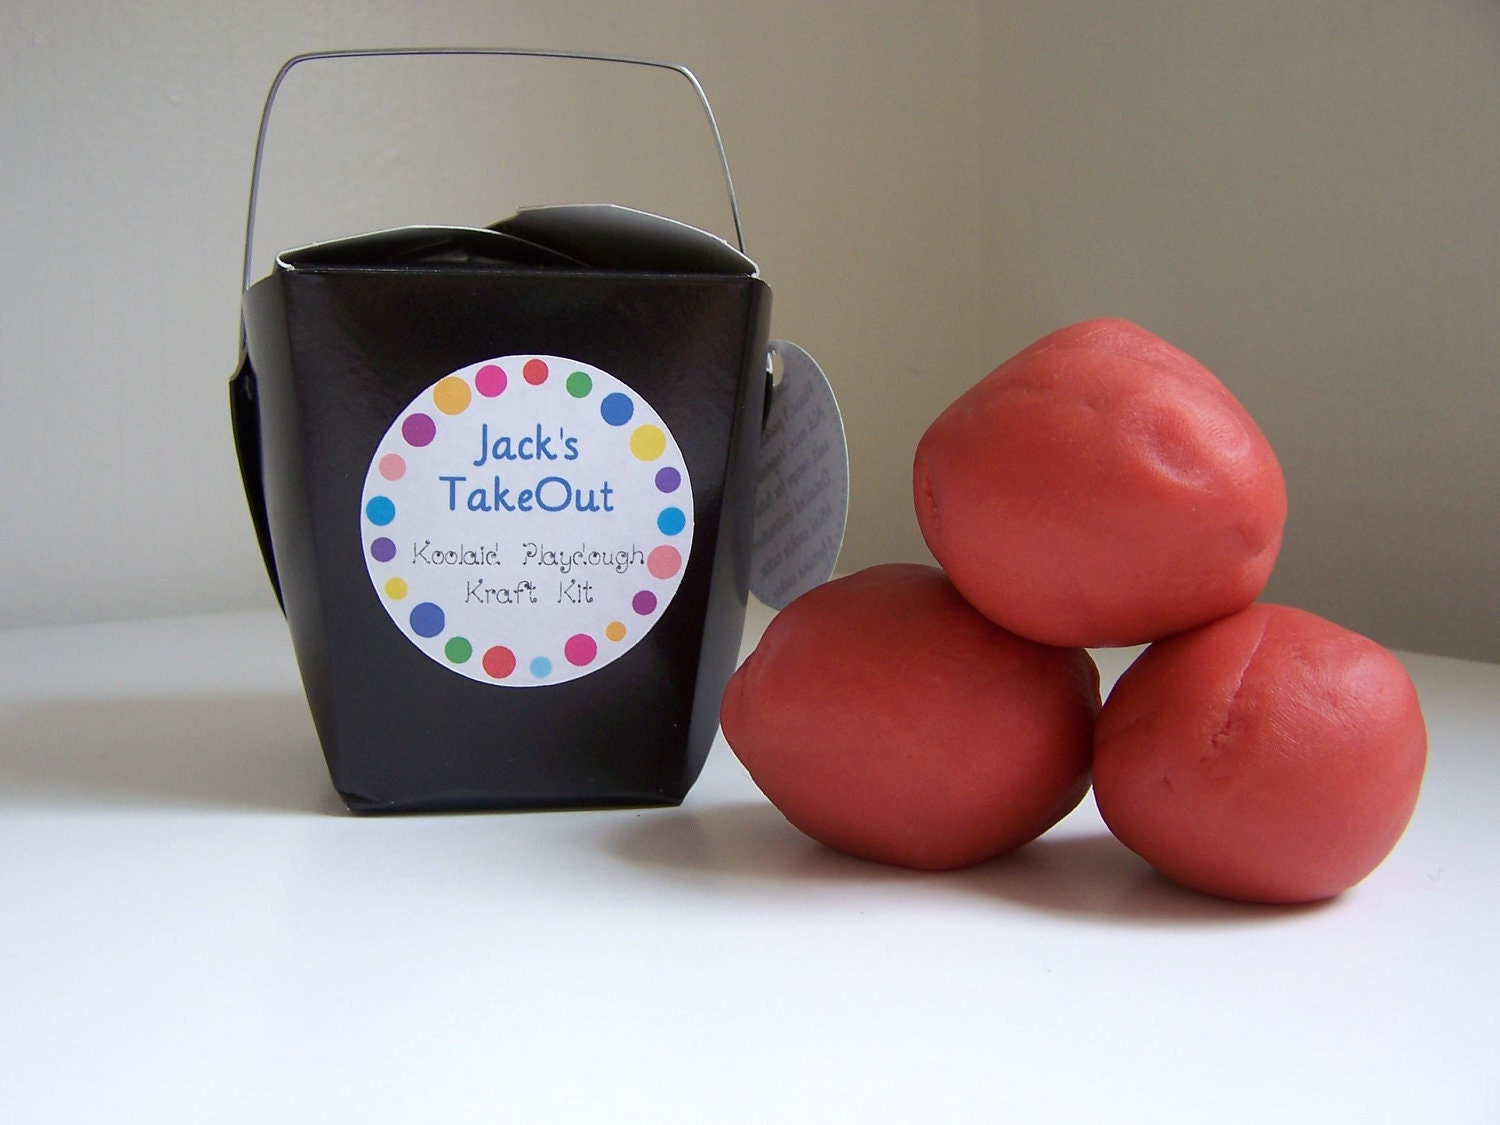 Craft Kit For Boys - Everything You Need To Make A Batch of All Natural Kool Aid Play Dough - You Choose The Color